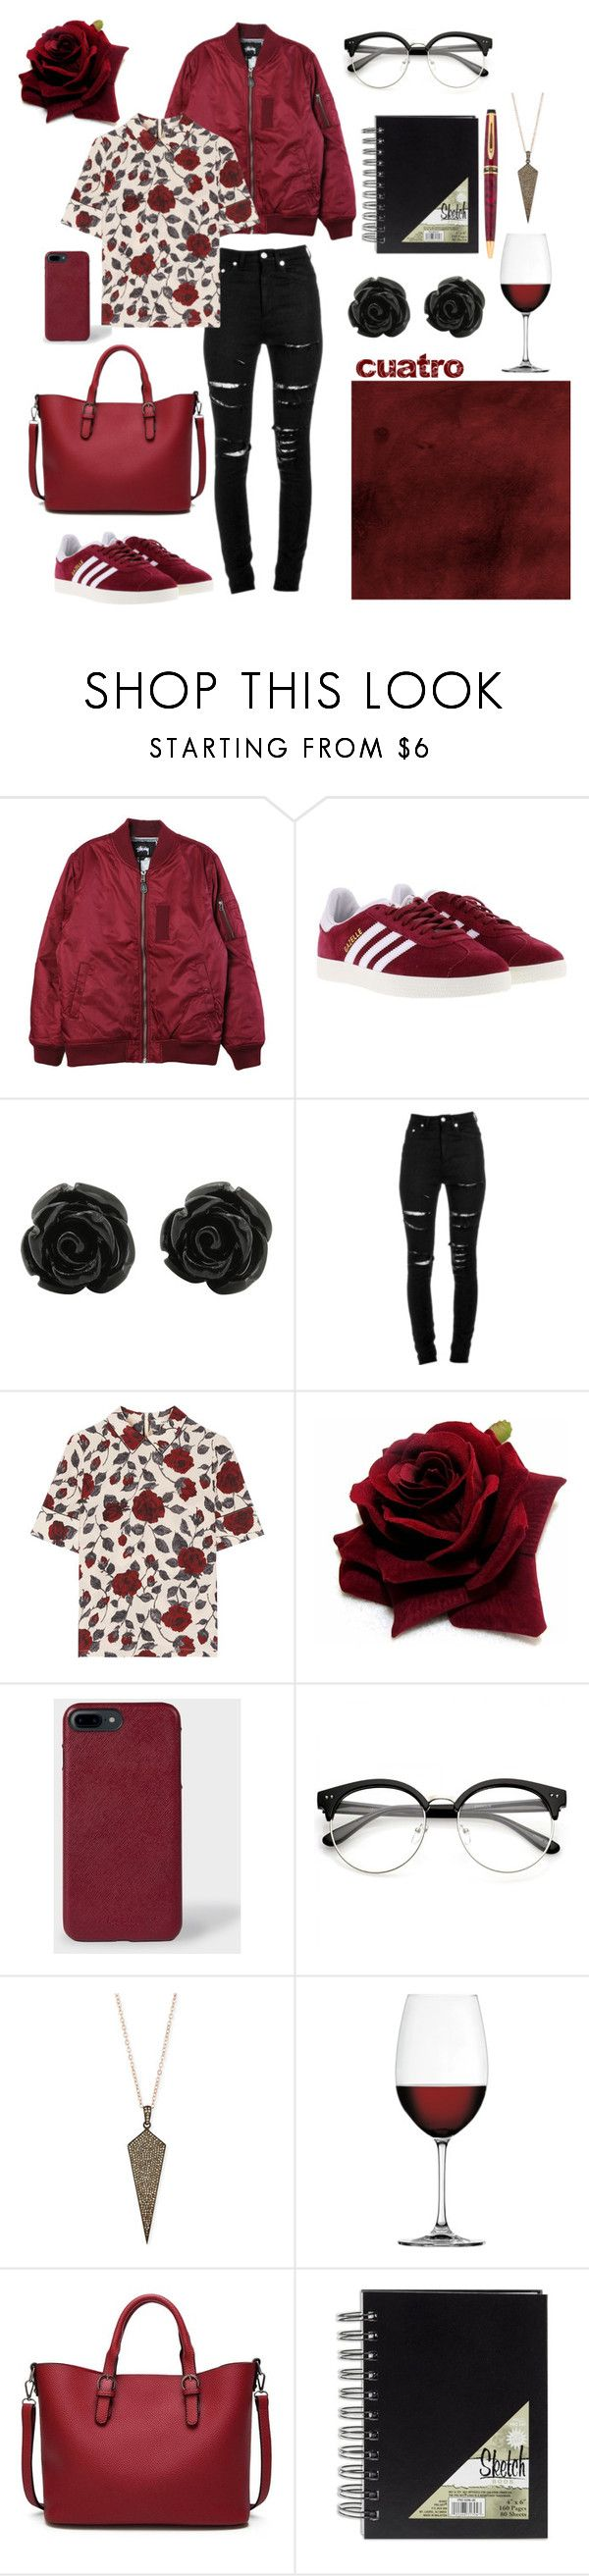 """""""cuatro"""" by lillian-rose-31 ❤ liked on Polyvore featuring Stussy, adidas, Yves Saint Laurent, Ganni, Paul Smith, Siena Jewelry and Nachtmann"""